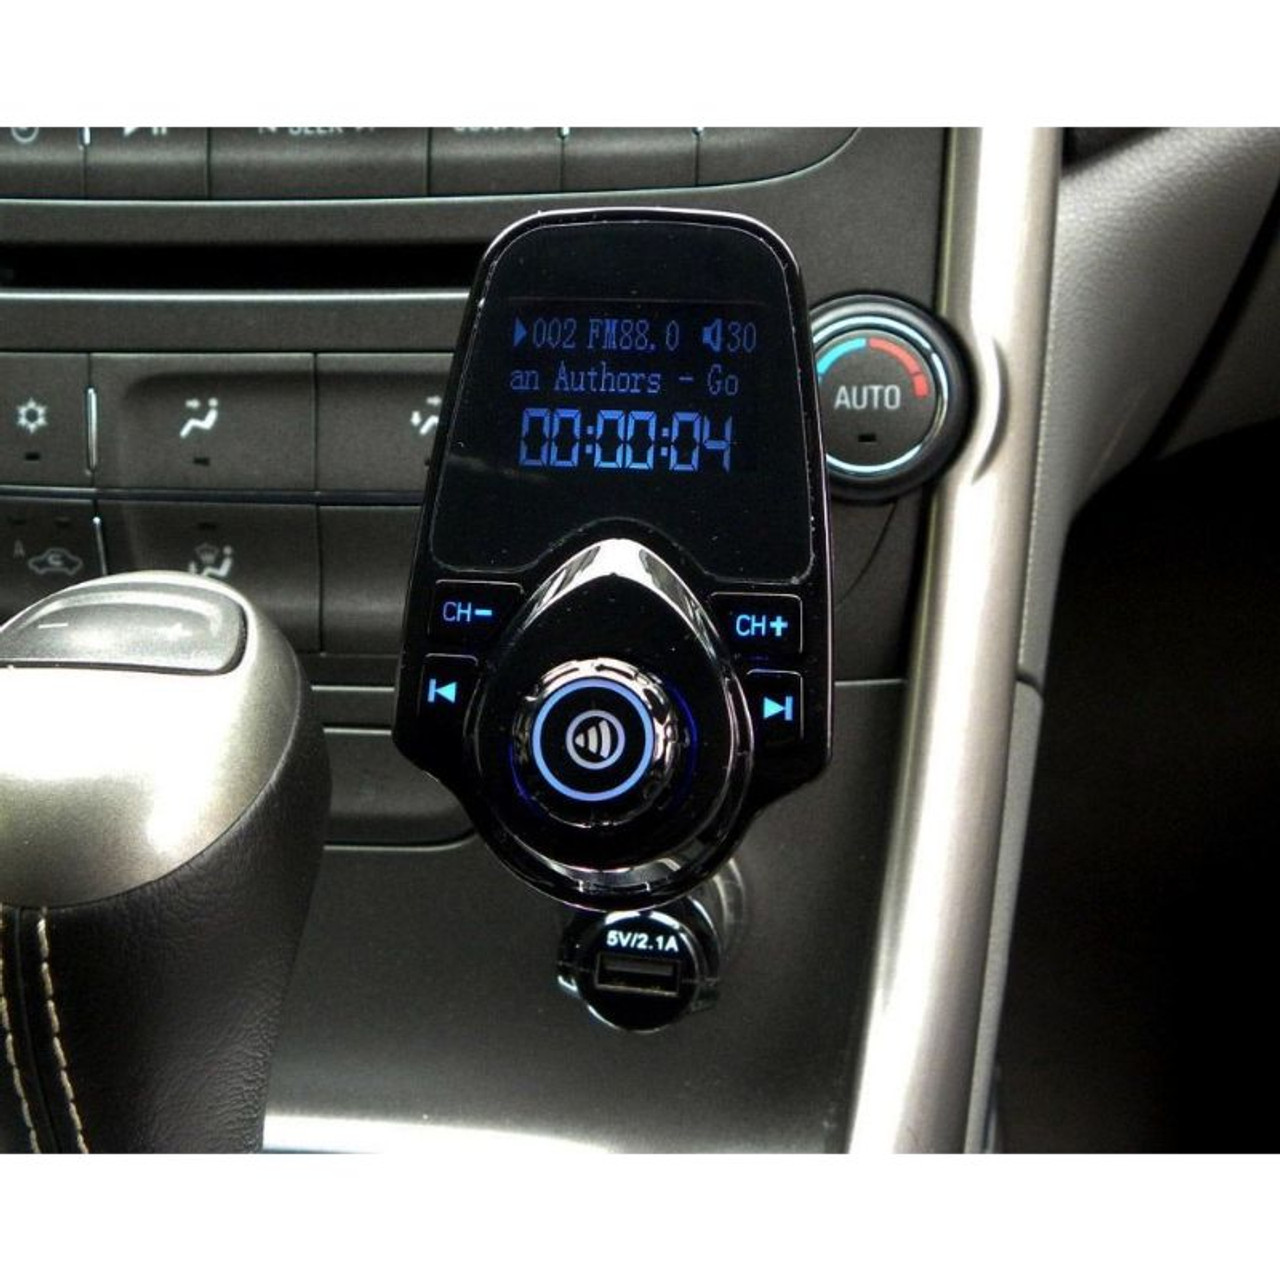 In-Car Bluetooth Adapter Transmitter with LCD Display